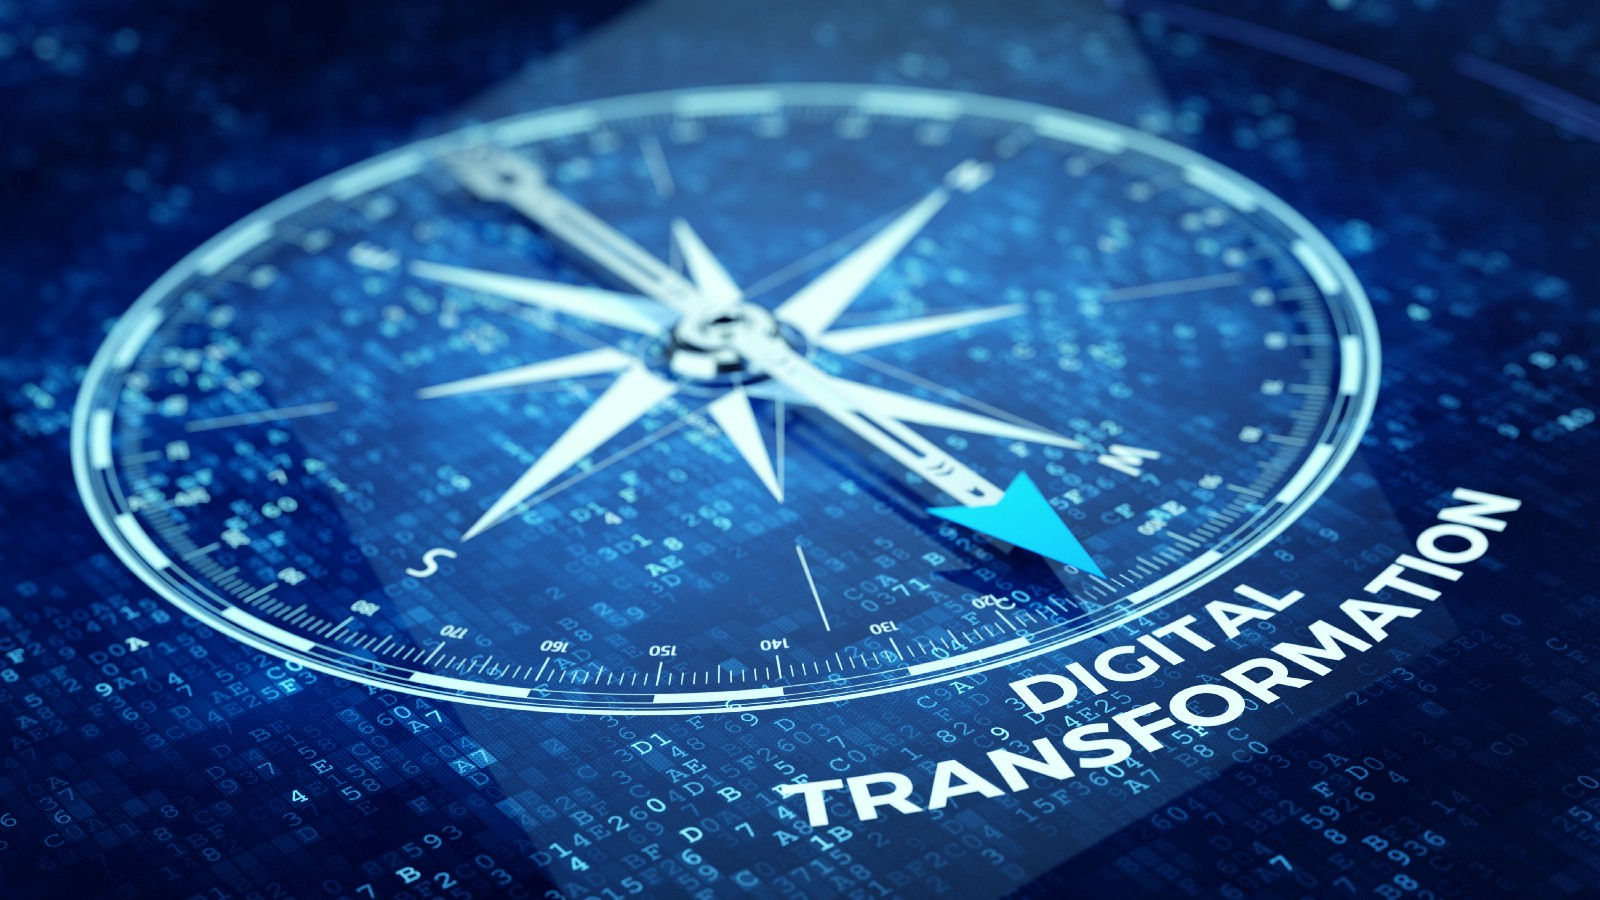 Digital Transformation and Entrepreneurship